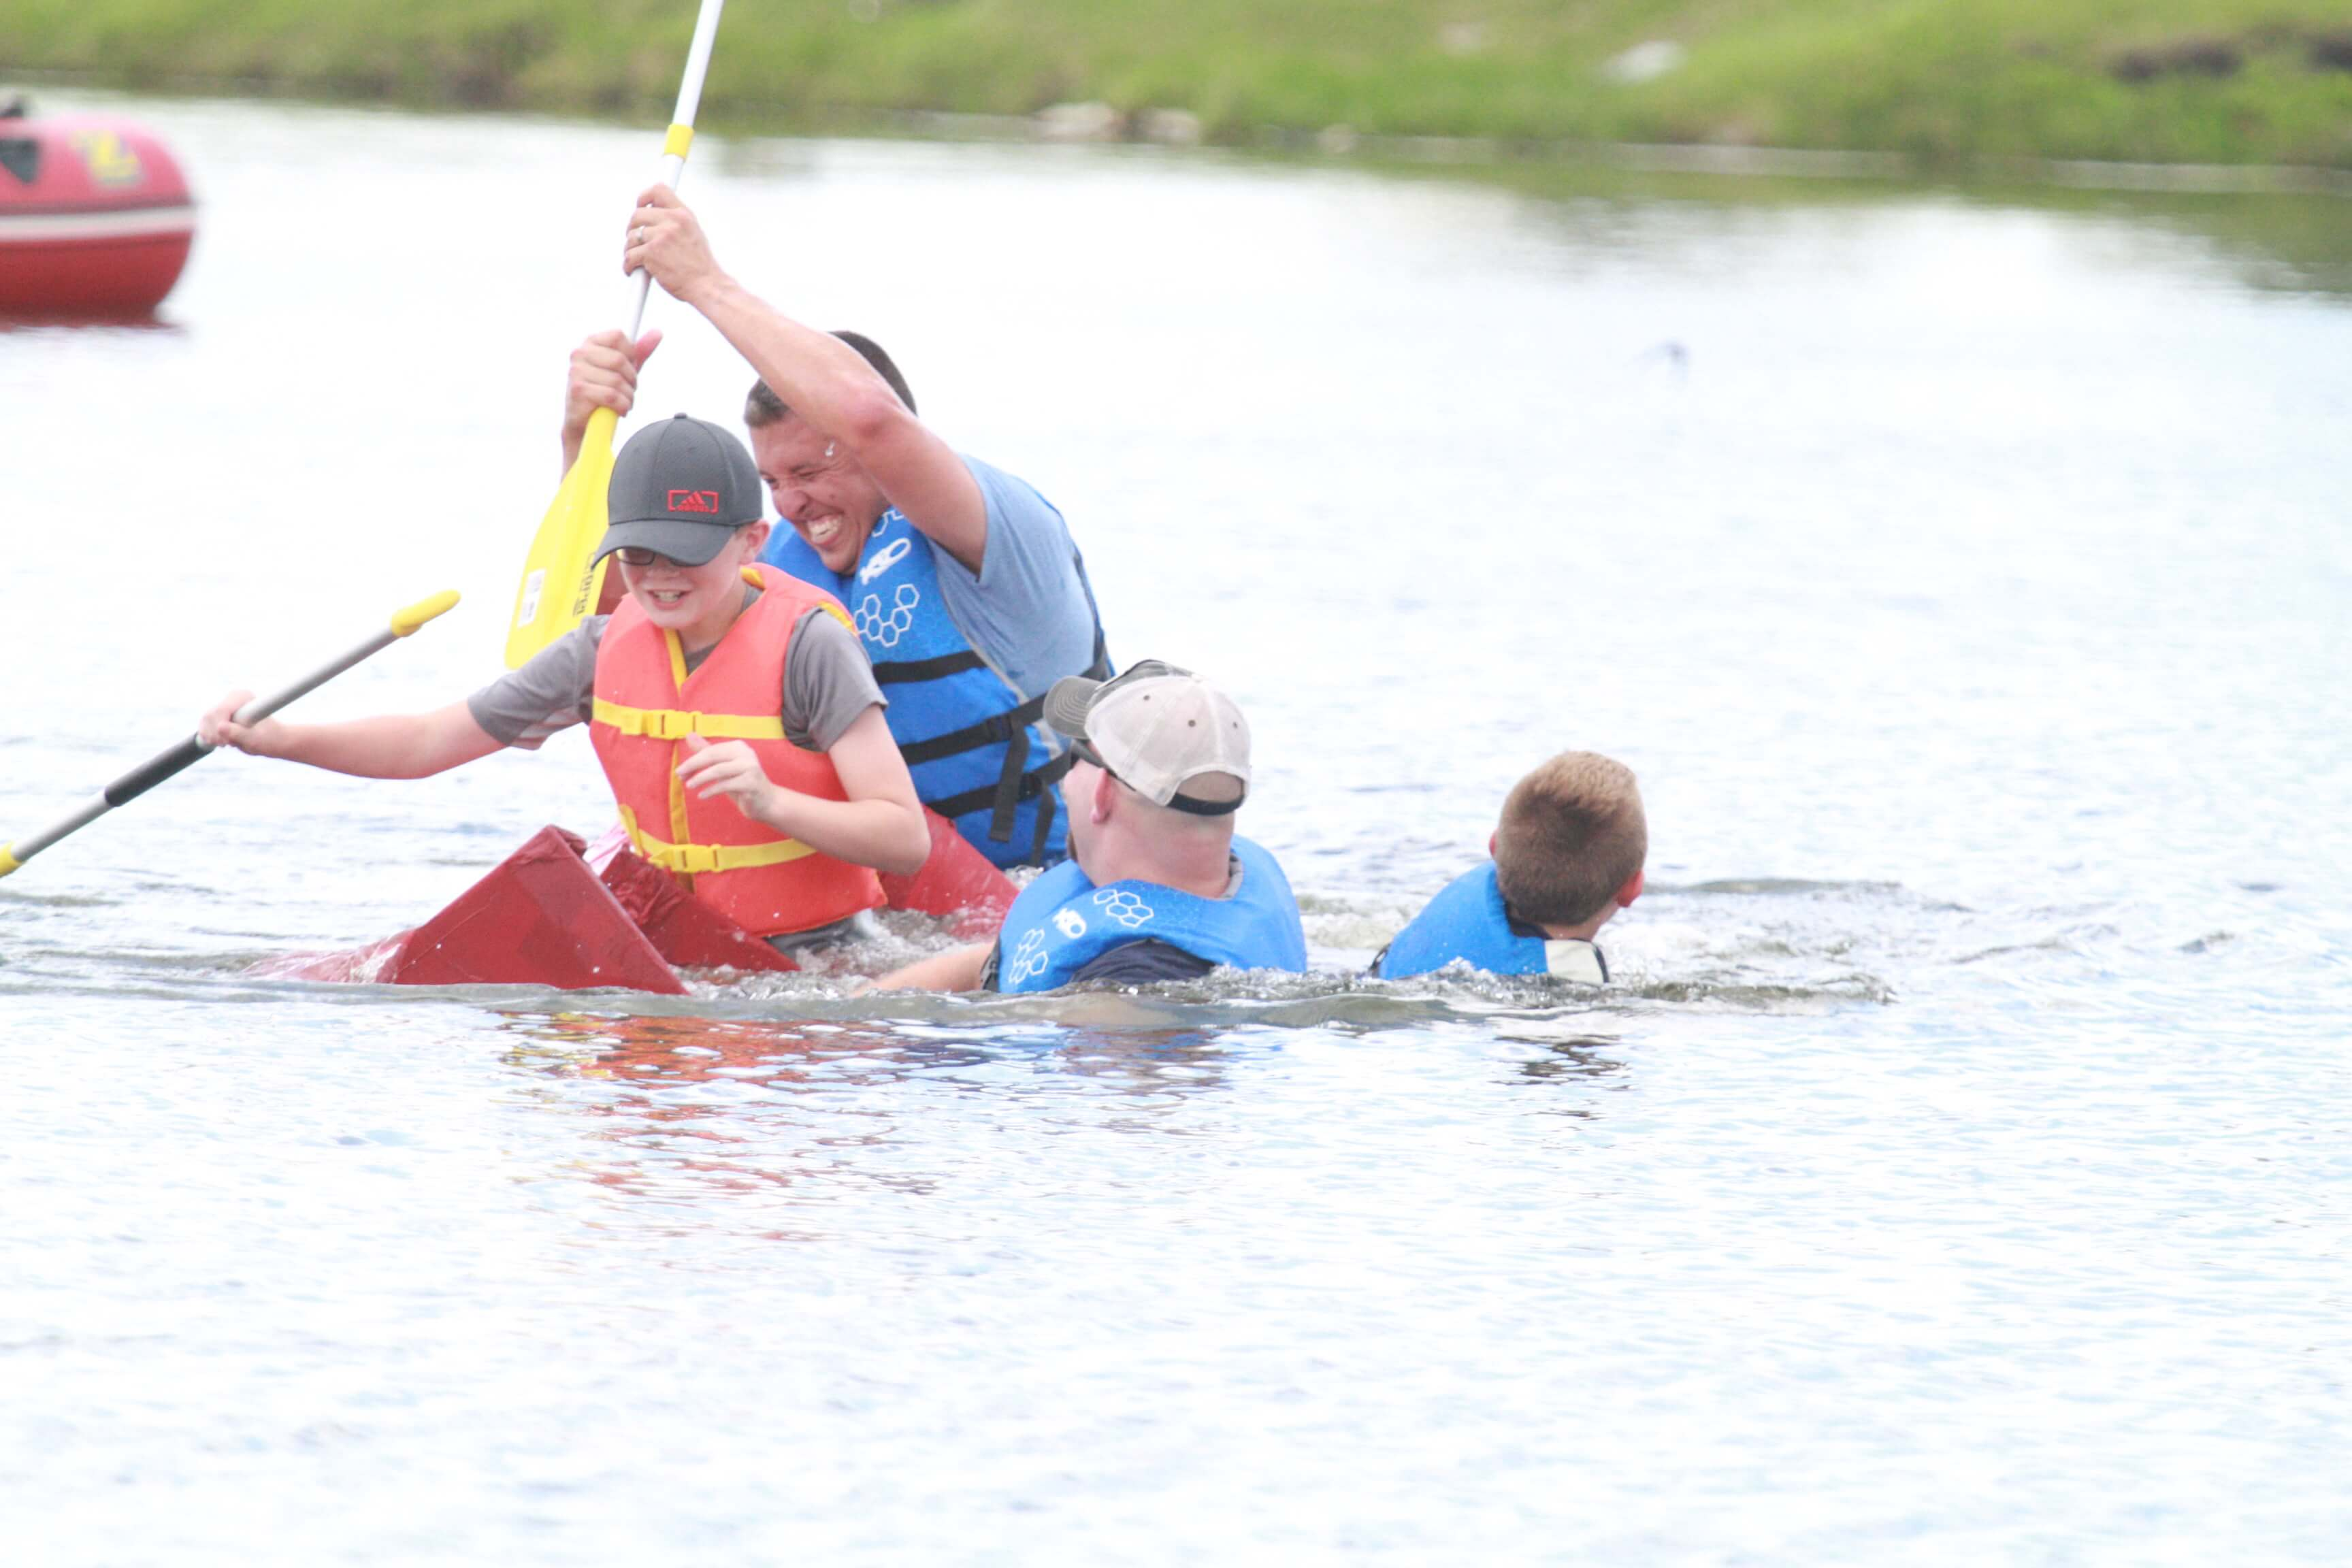 4 Participants in the Boat Regatta event struggle to keep their cardboard boat afloat. While wearing lifejackets, the team struggles with a submerging boat.